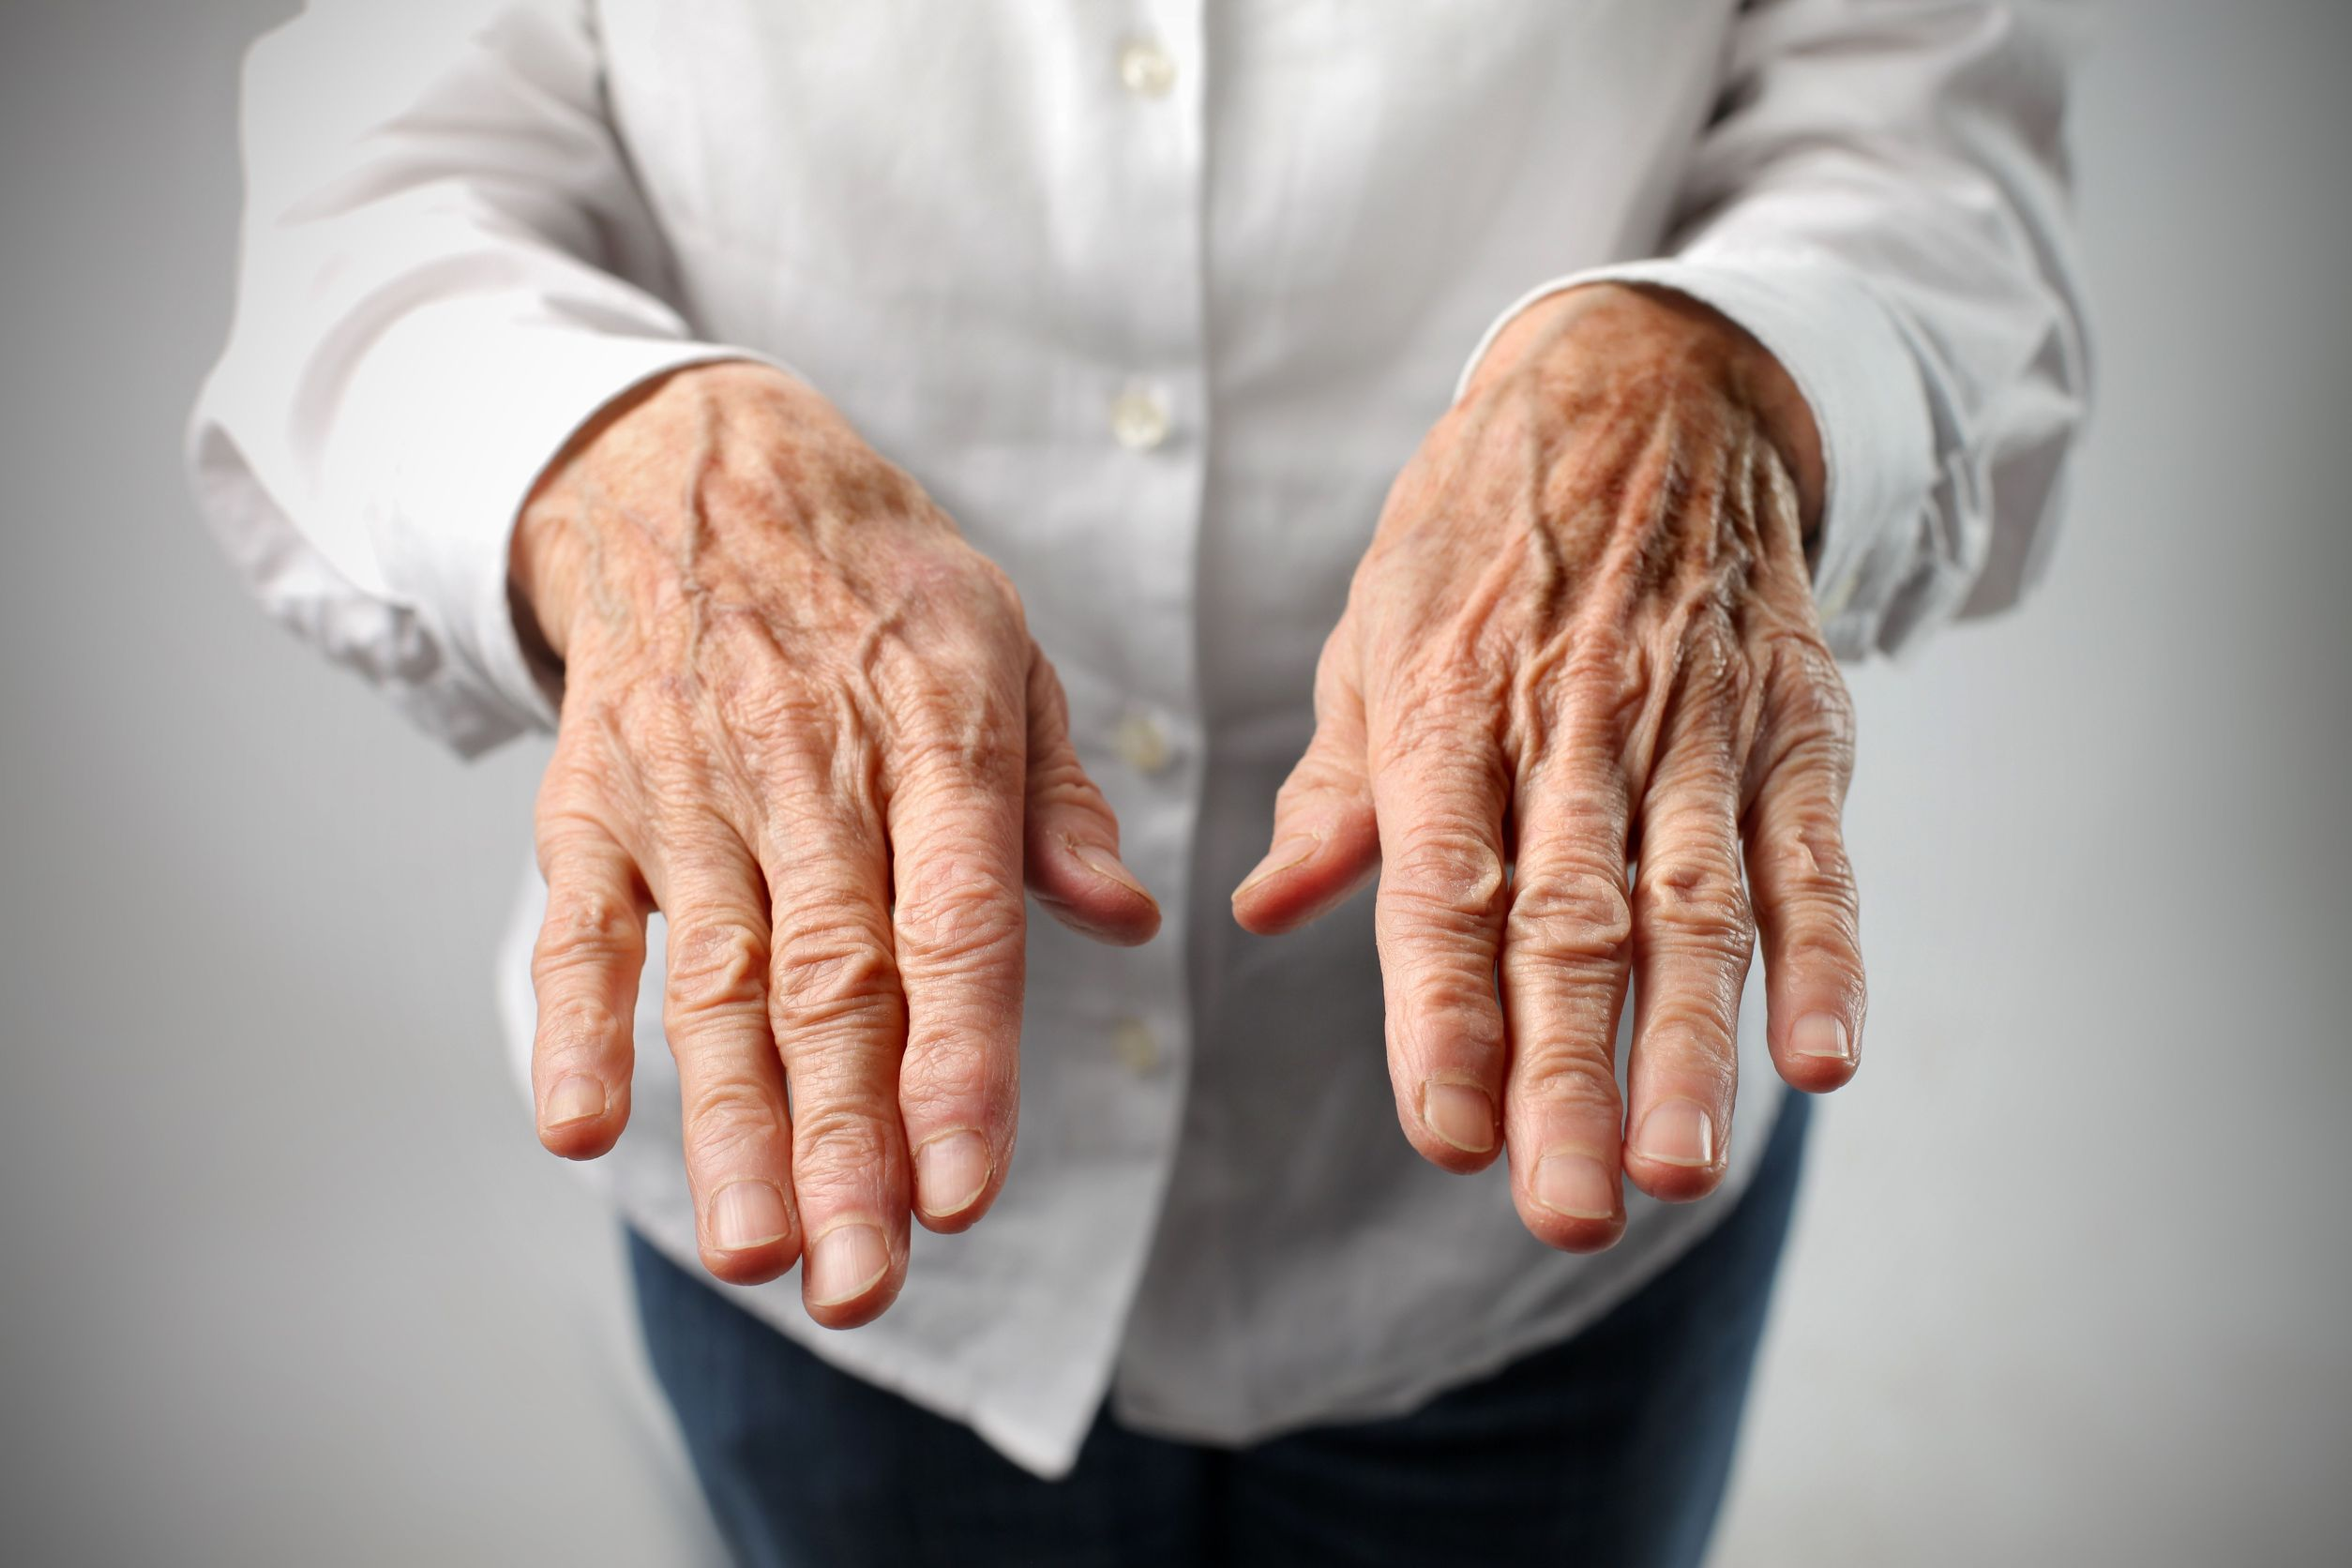 restore old looking hands to young hands